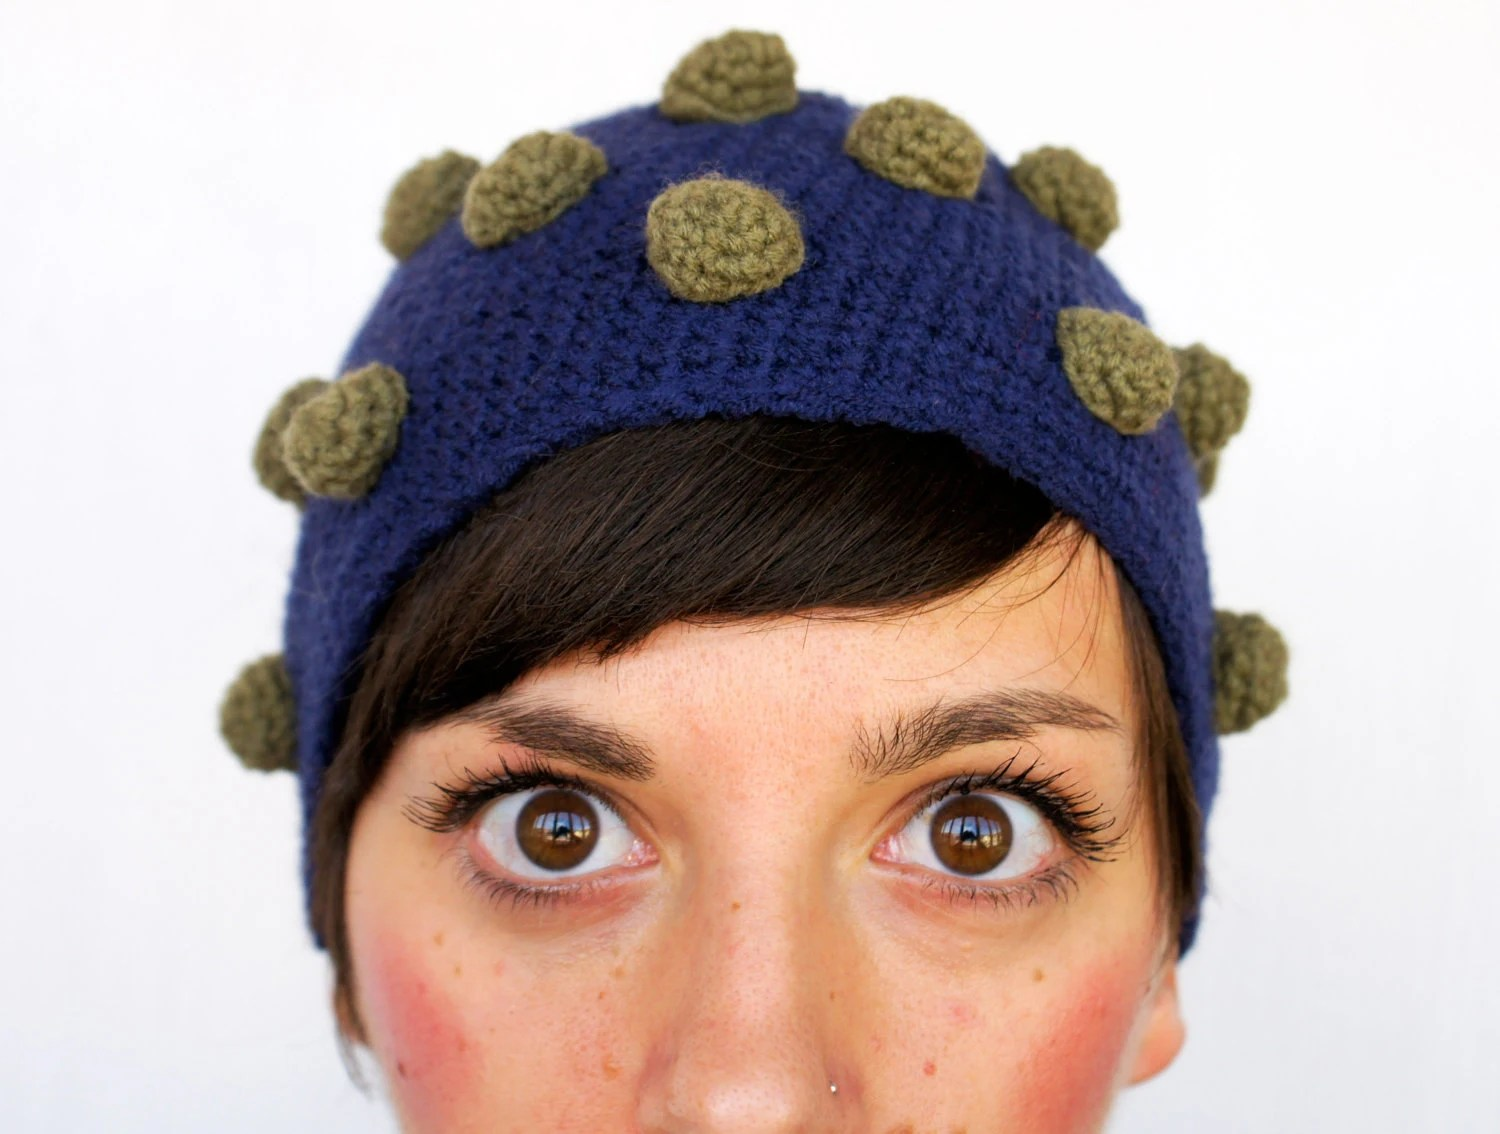 funny hat with pimples